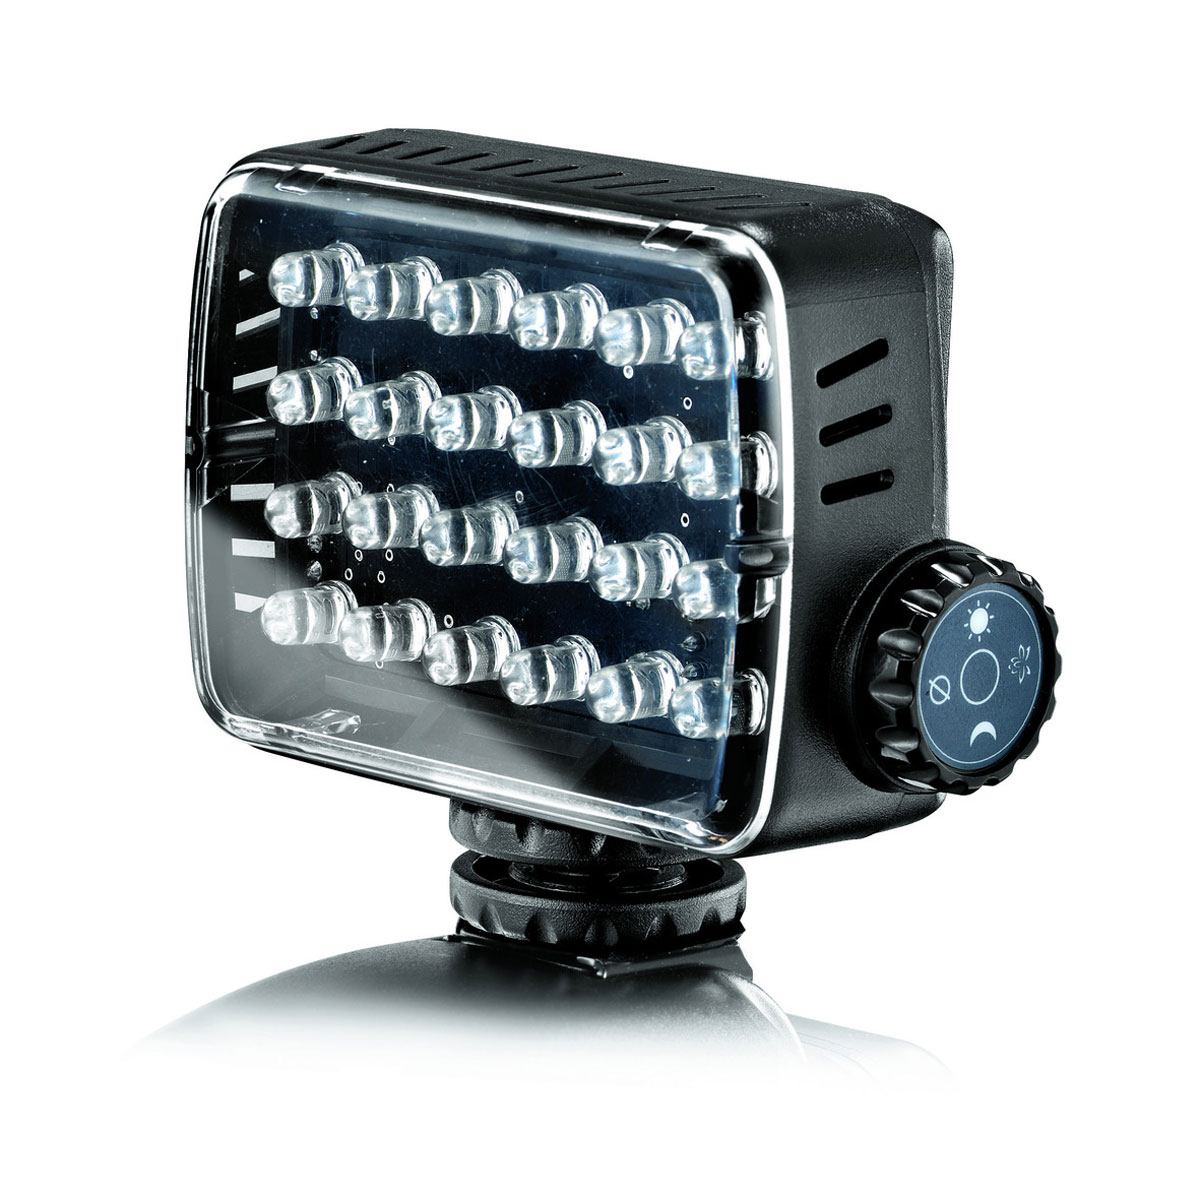 Flash appareil photo Manfrotto ML240 Torche LED compacte (24 LED)